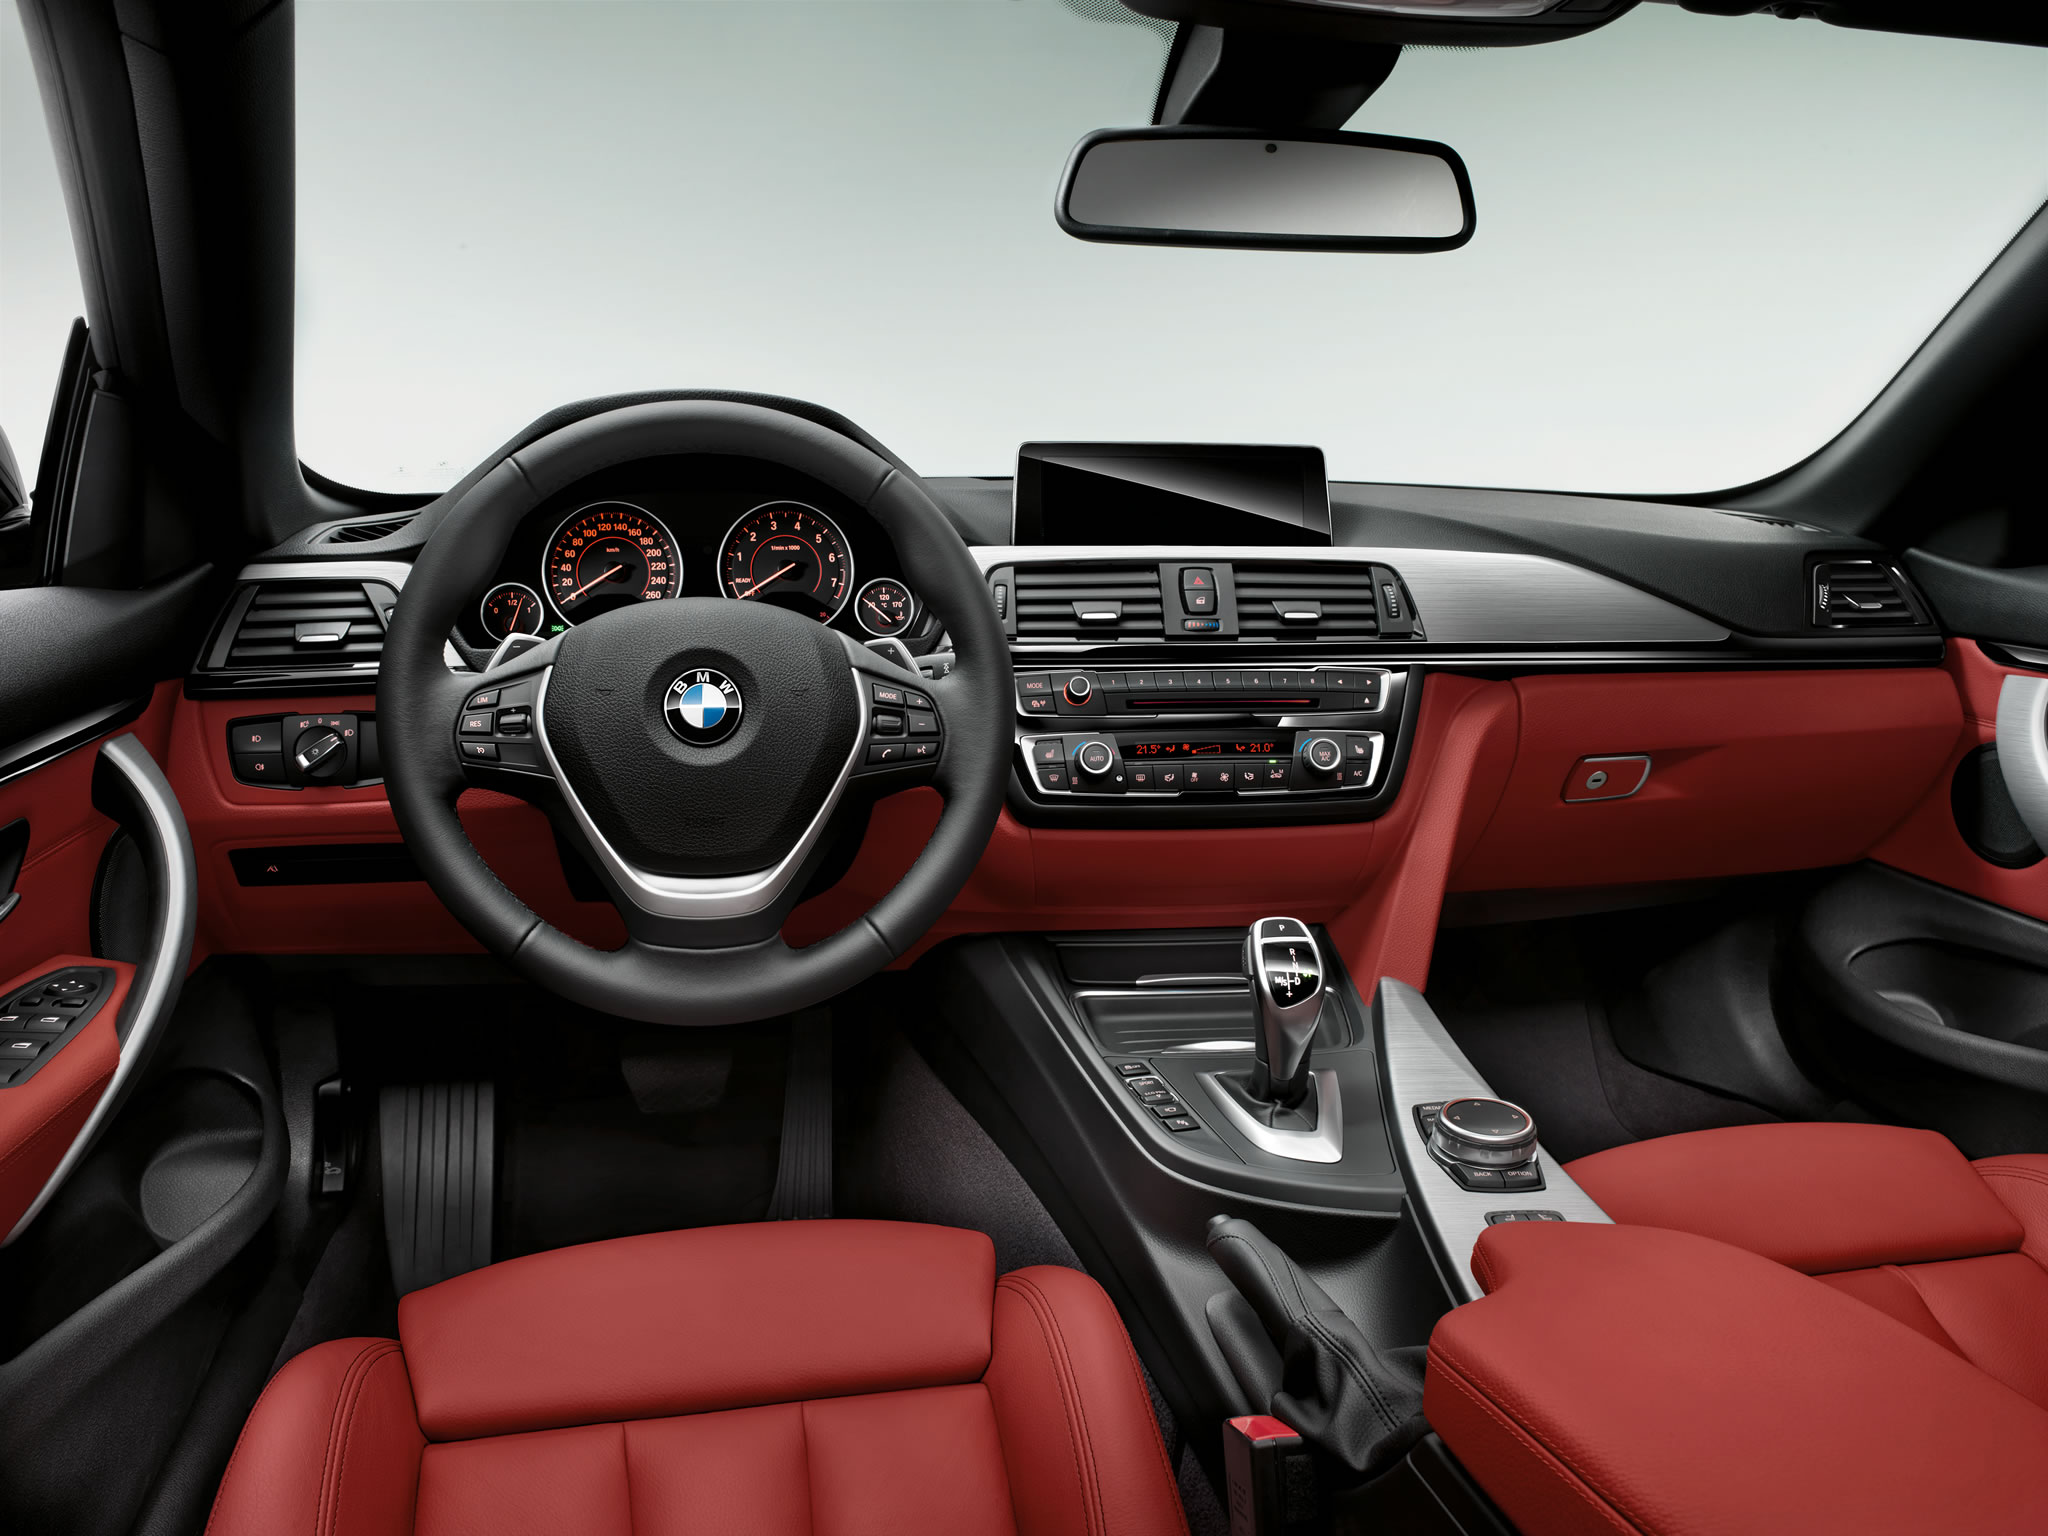 2014 Bmw 435i Convertible Interior Photo Red Leather Size 2048 X 1536 Nr 9 17